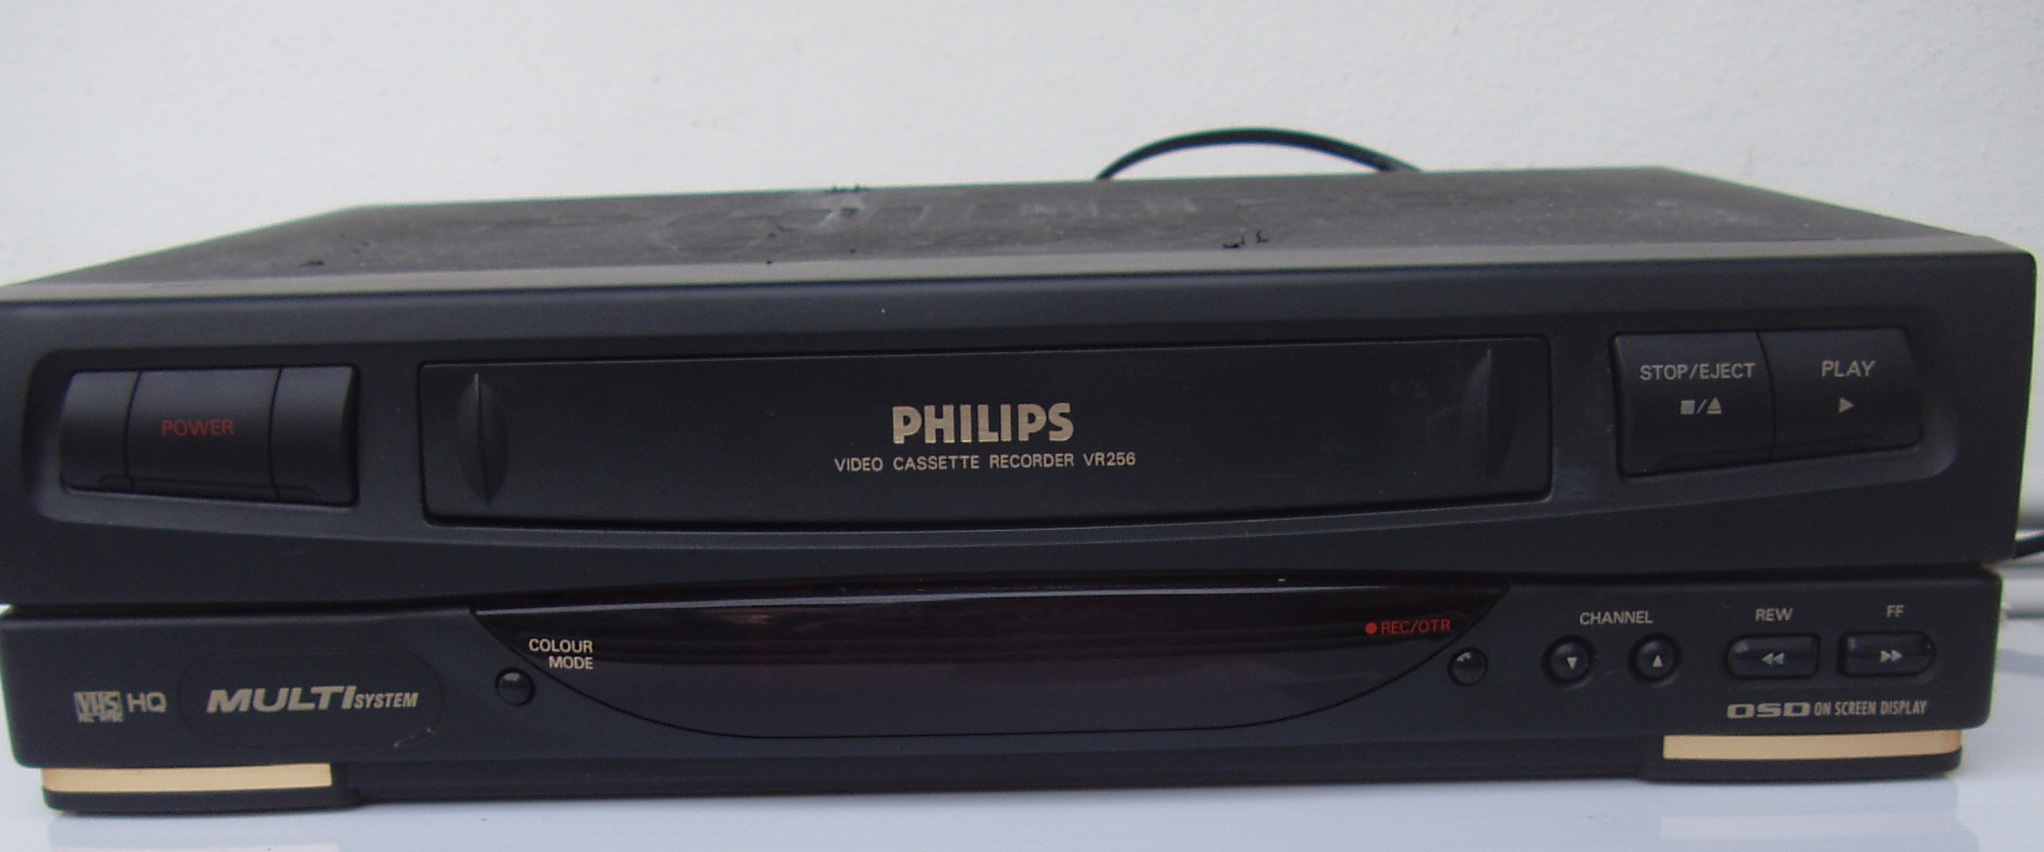 Philips VCR - VR 256 - Video Machine - in good working order